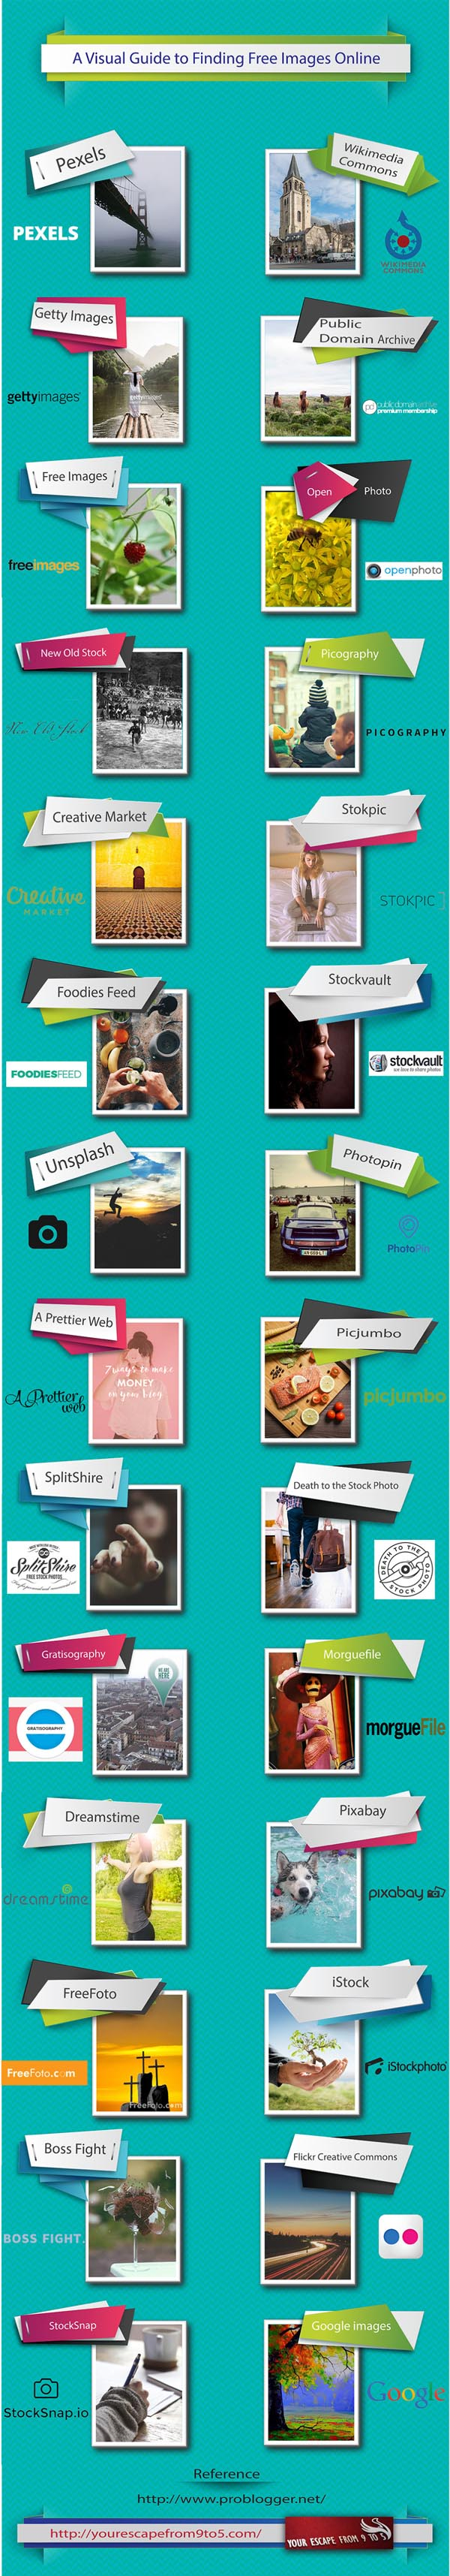 Find Free Online Images – Infographic